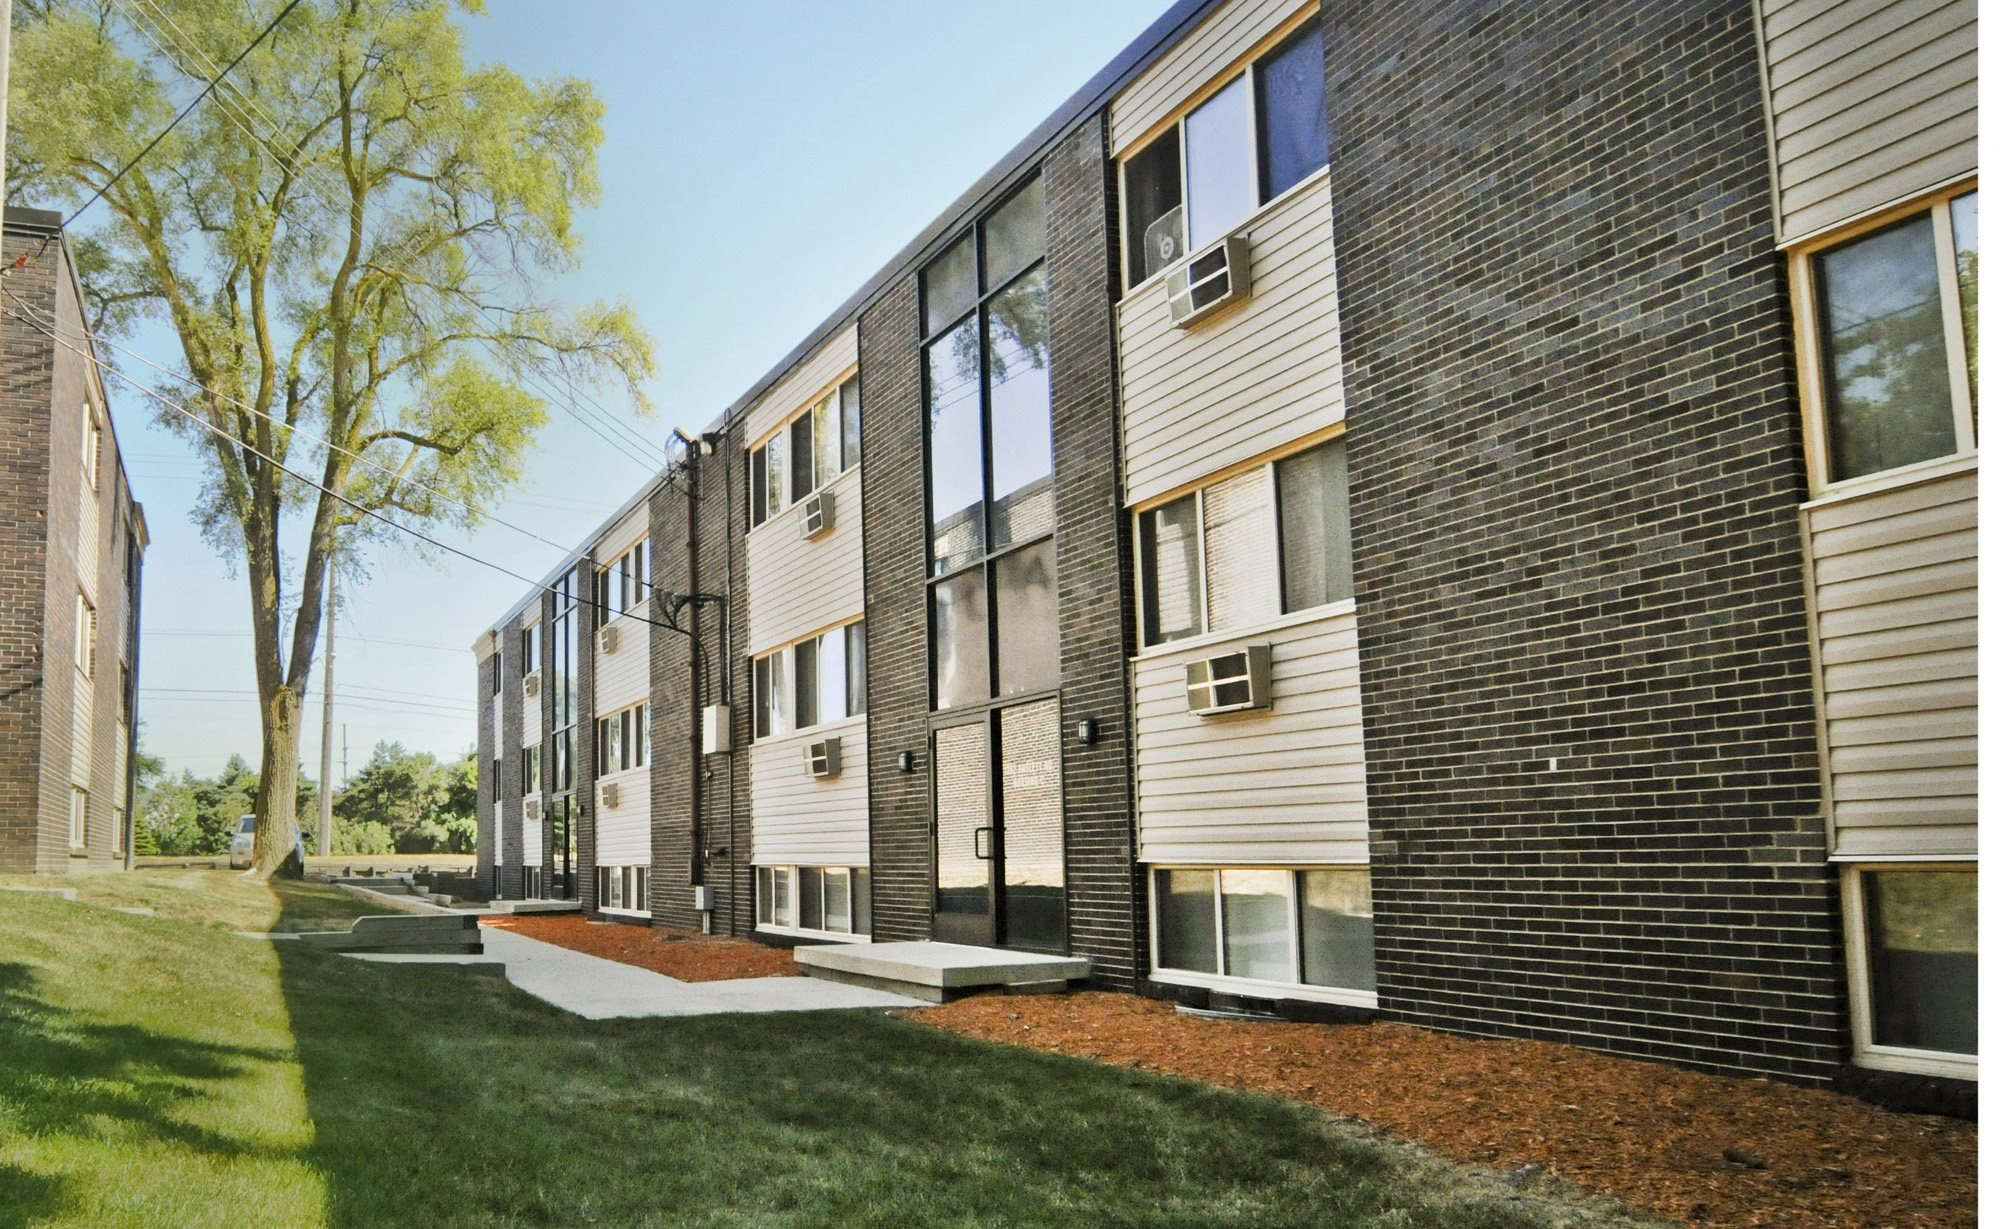 North Pointe Apartments in East Lansing Michigan